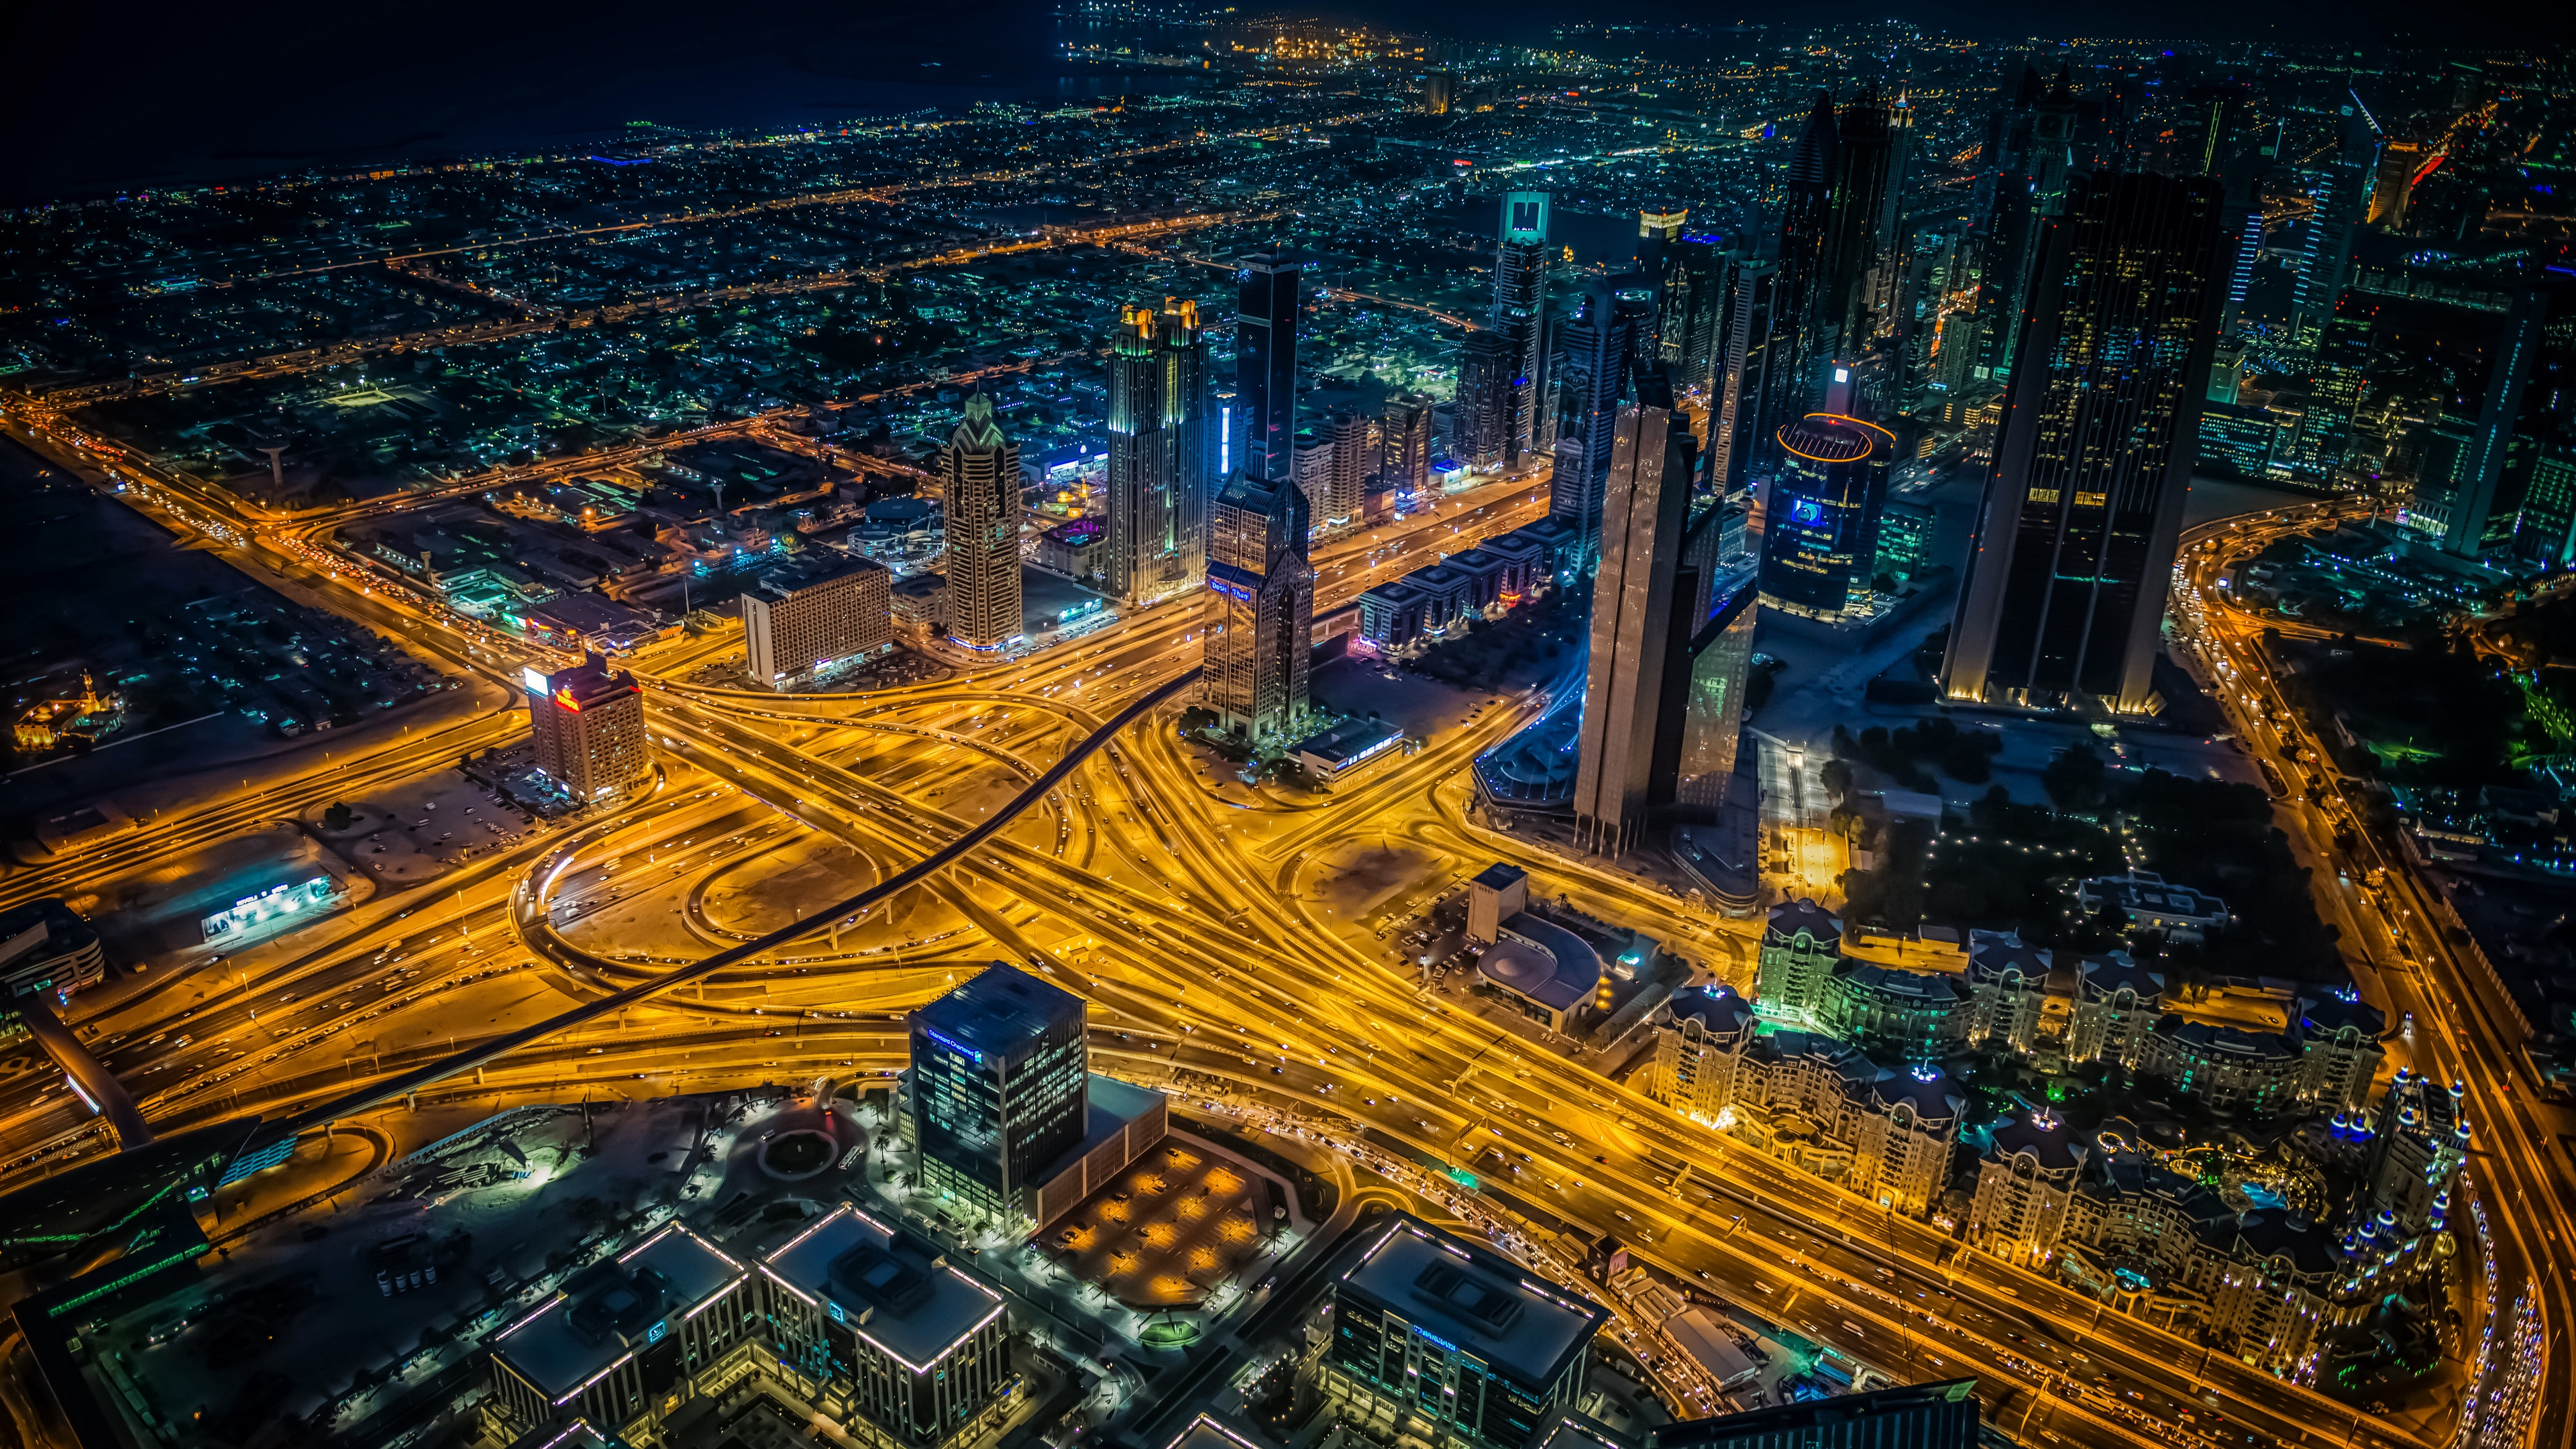 night city view from above intersection roads skyscrapers dubai 4k 1538066300 - night city, view from above, intersection, roads, skyscrapers, dubai 4k - view from above, night city, intersection